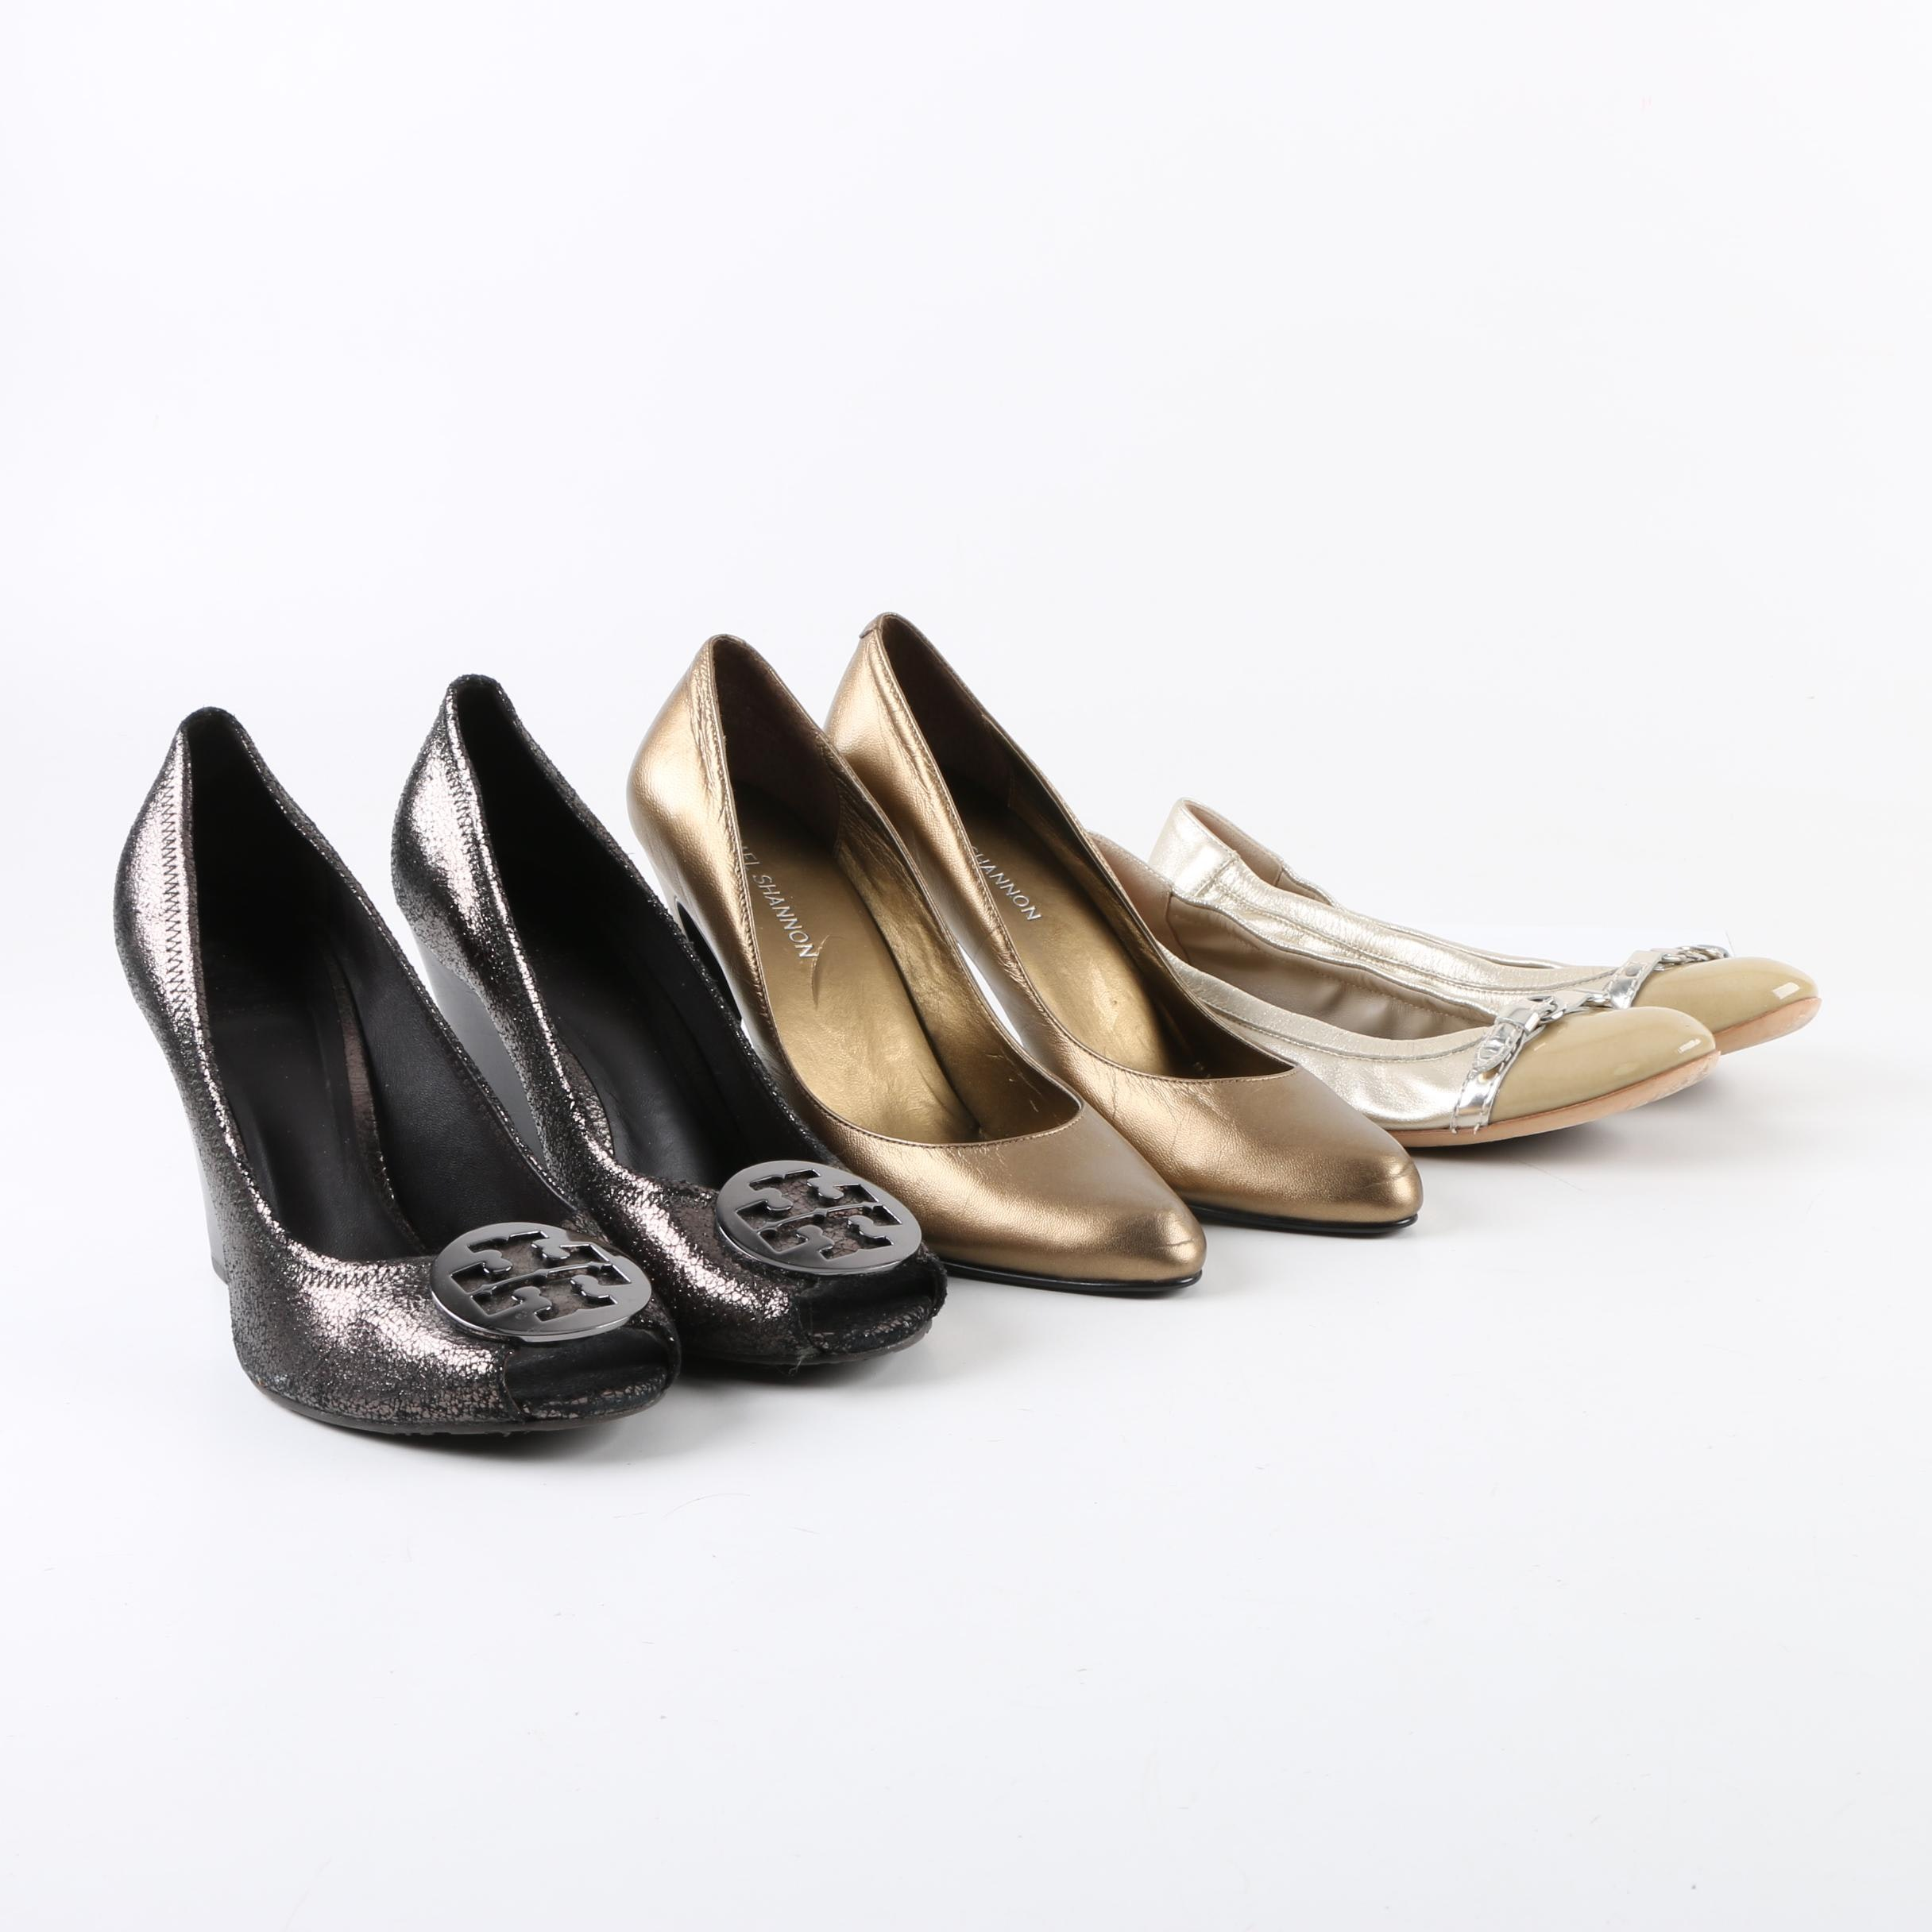 Women's Leather Pumps and Flats Including Tory Burch and Michael Shannon